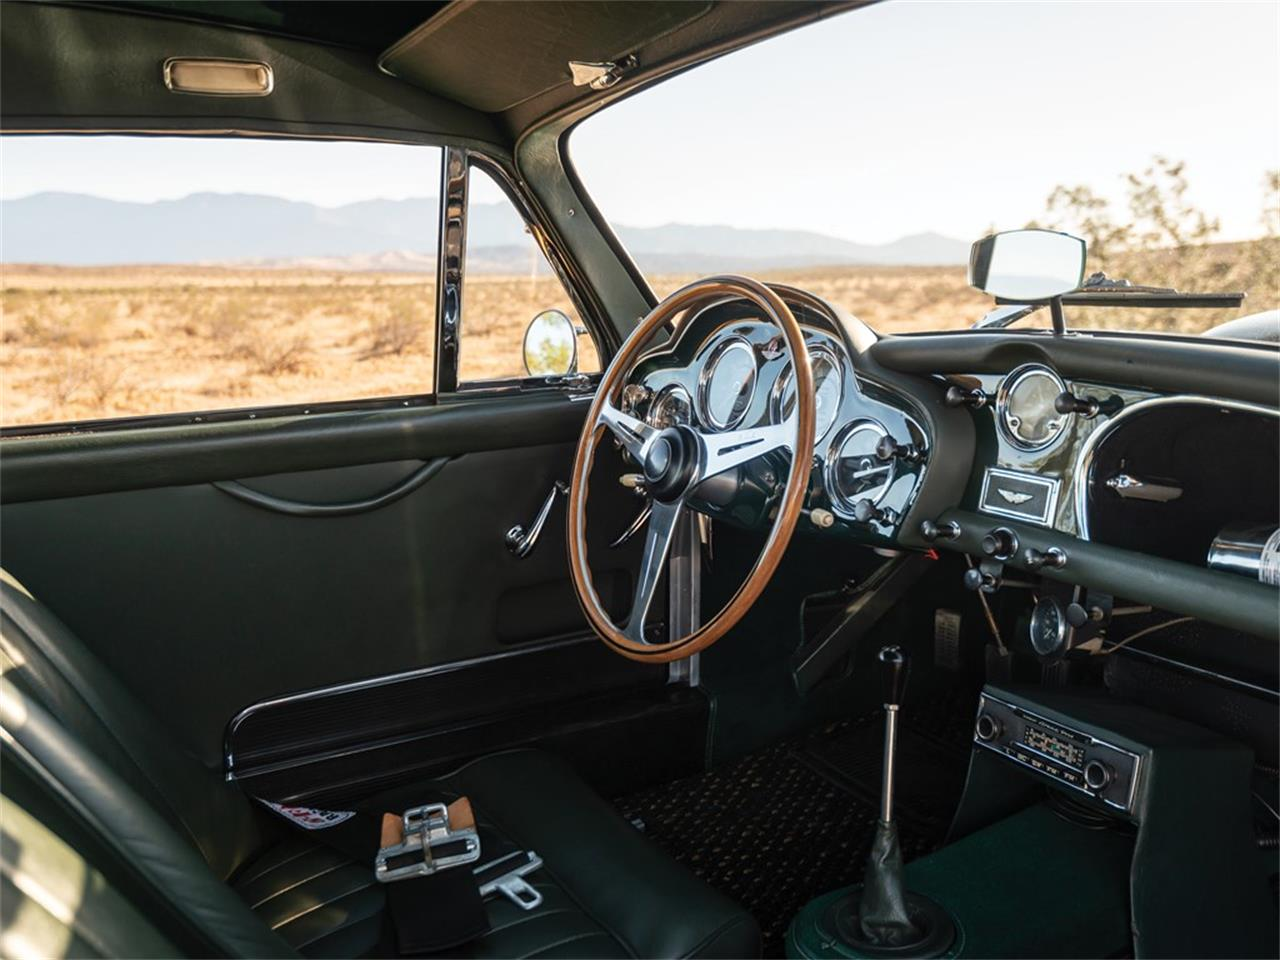 Large Picture of Classic 1957 Aston Martin DB 2/4 MKIII located in Monterey California Auction Vehicle Offered by RM Sotheby's - Q4GZ